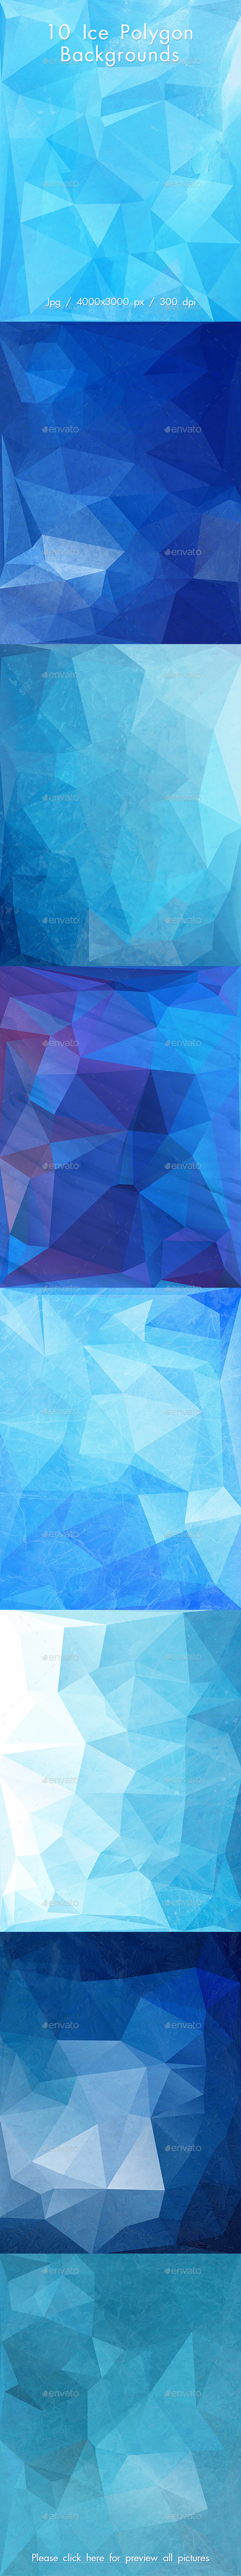 GraphicRiver Ice Polygon Backgrounds 10887215